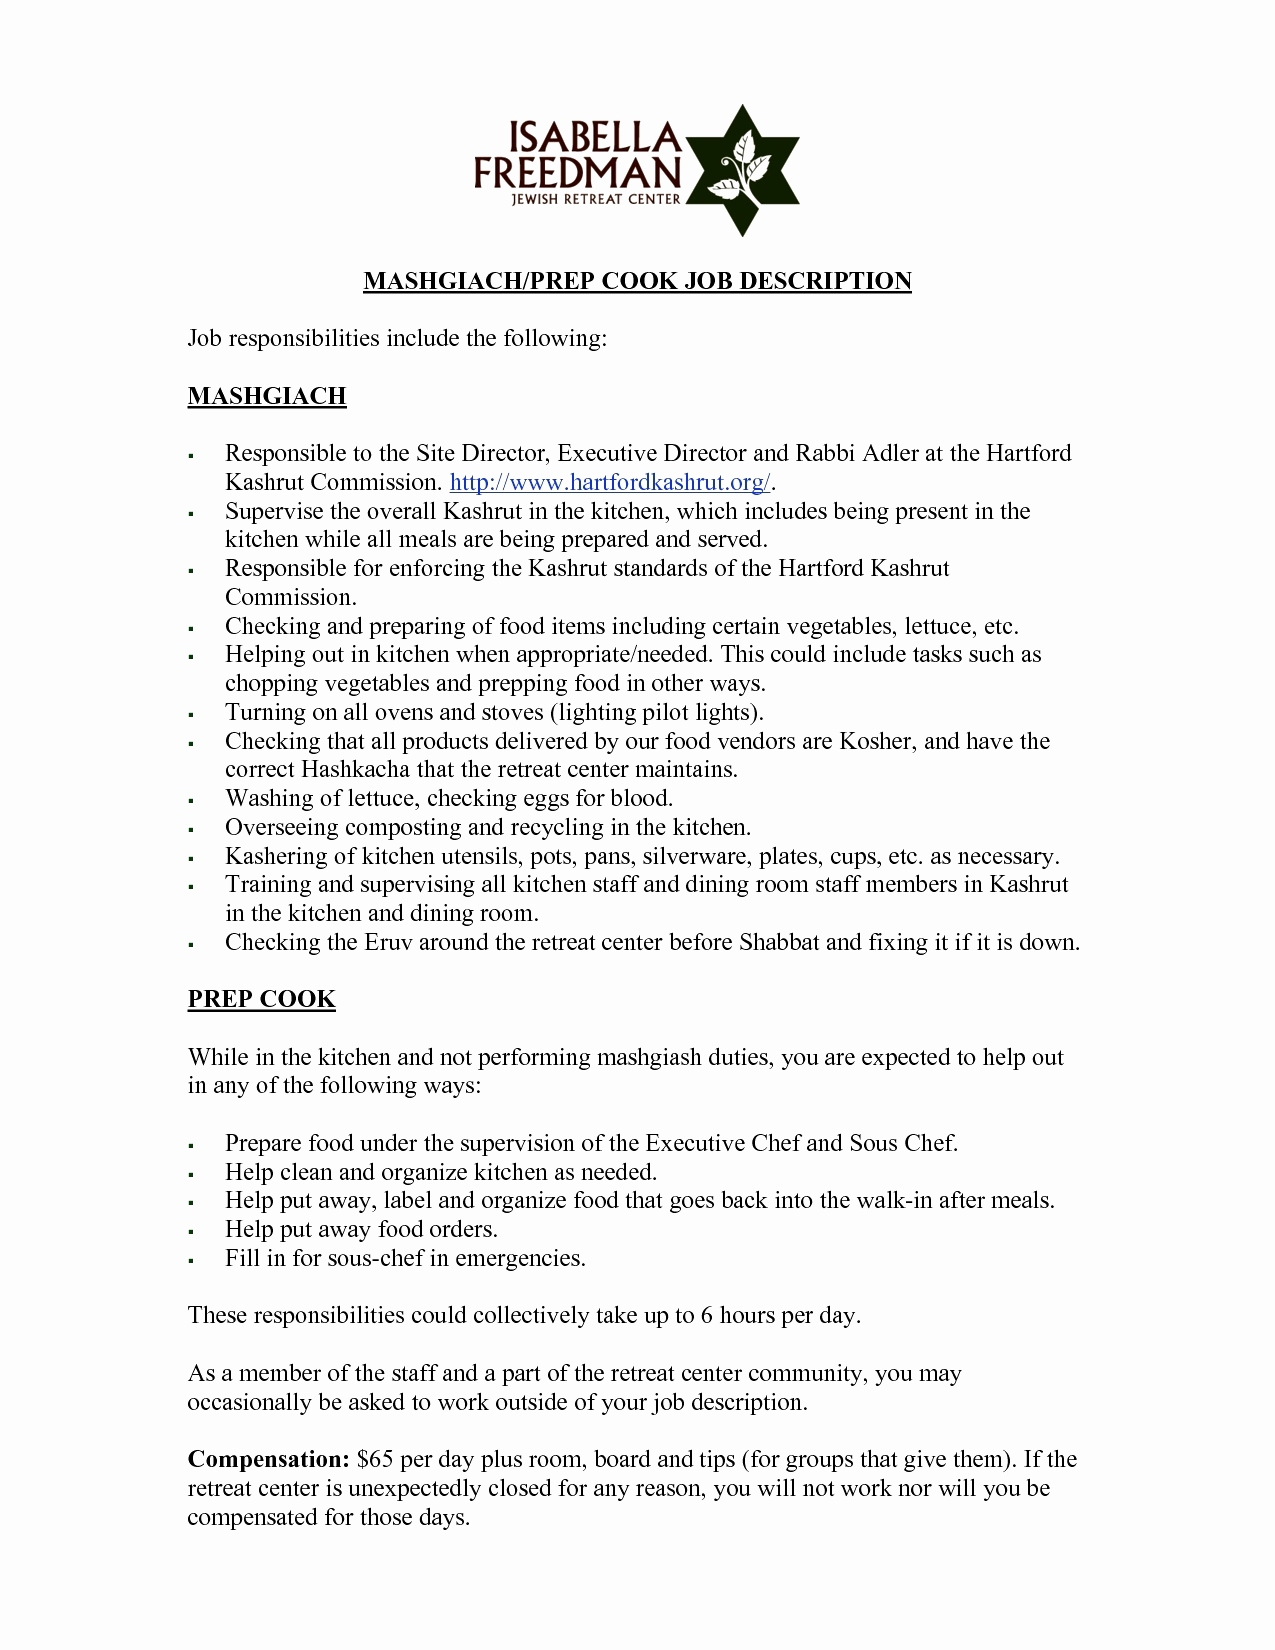 Resume for Stay at Home Mom Returning to Work Examples - Resumes for Stay at Home Moms Templates Inspirational Cover Letter